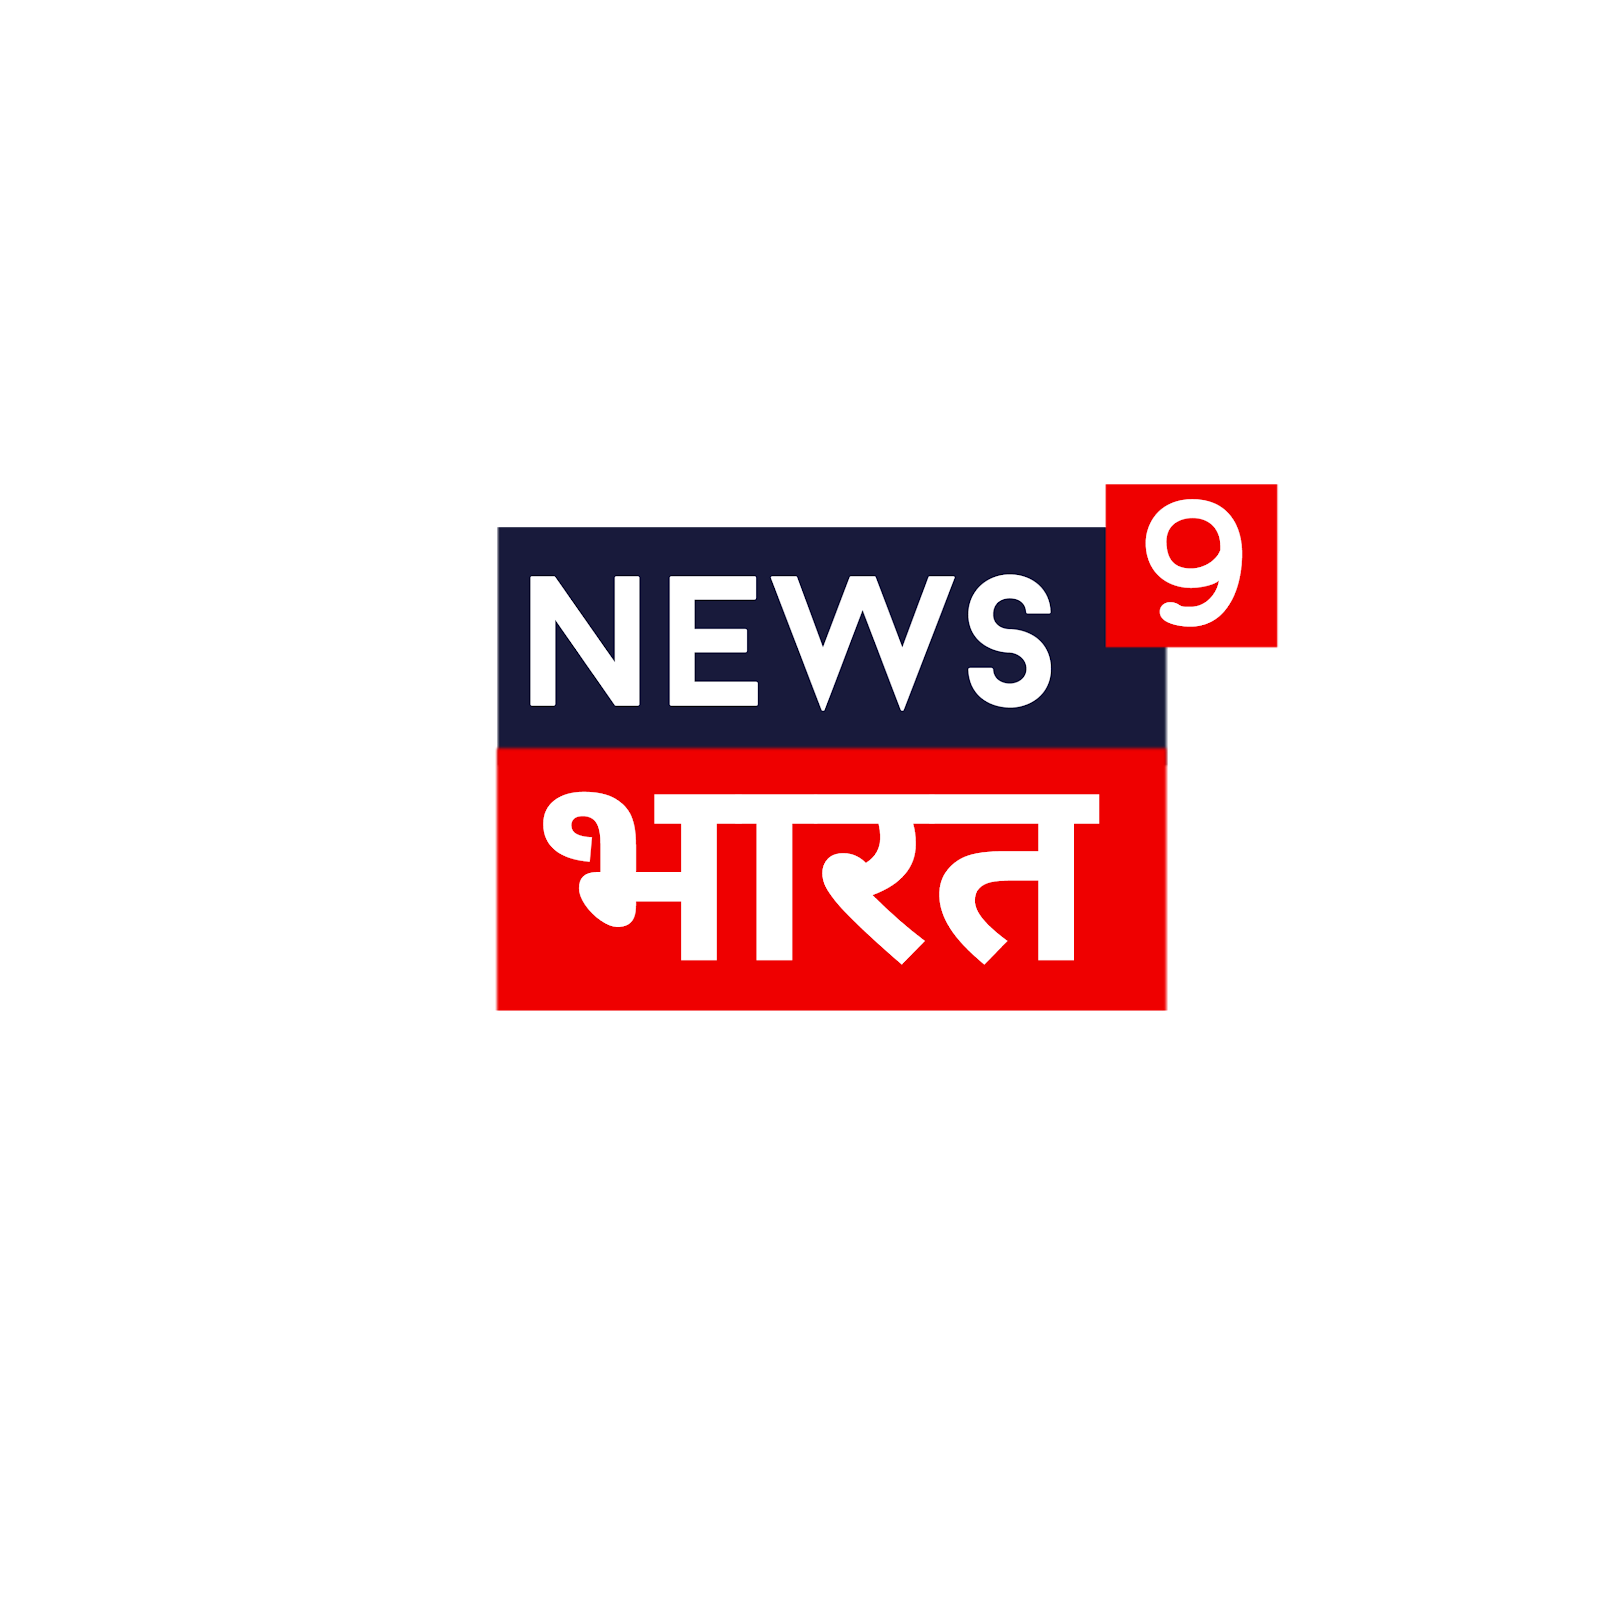 News 9 Bharat - हिंदी समाचार, Hindi News, Breaking News, Border News, Sonauli Border